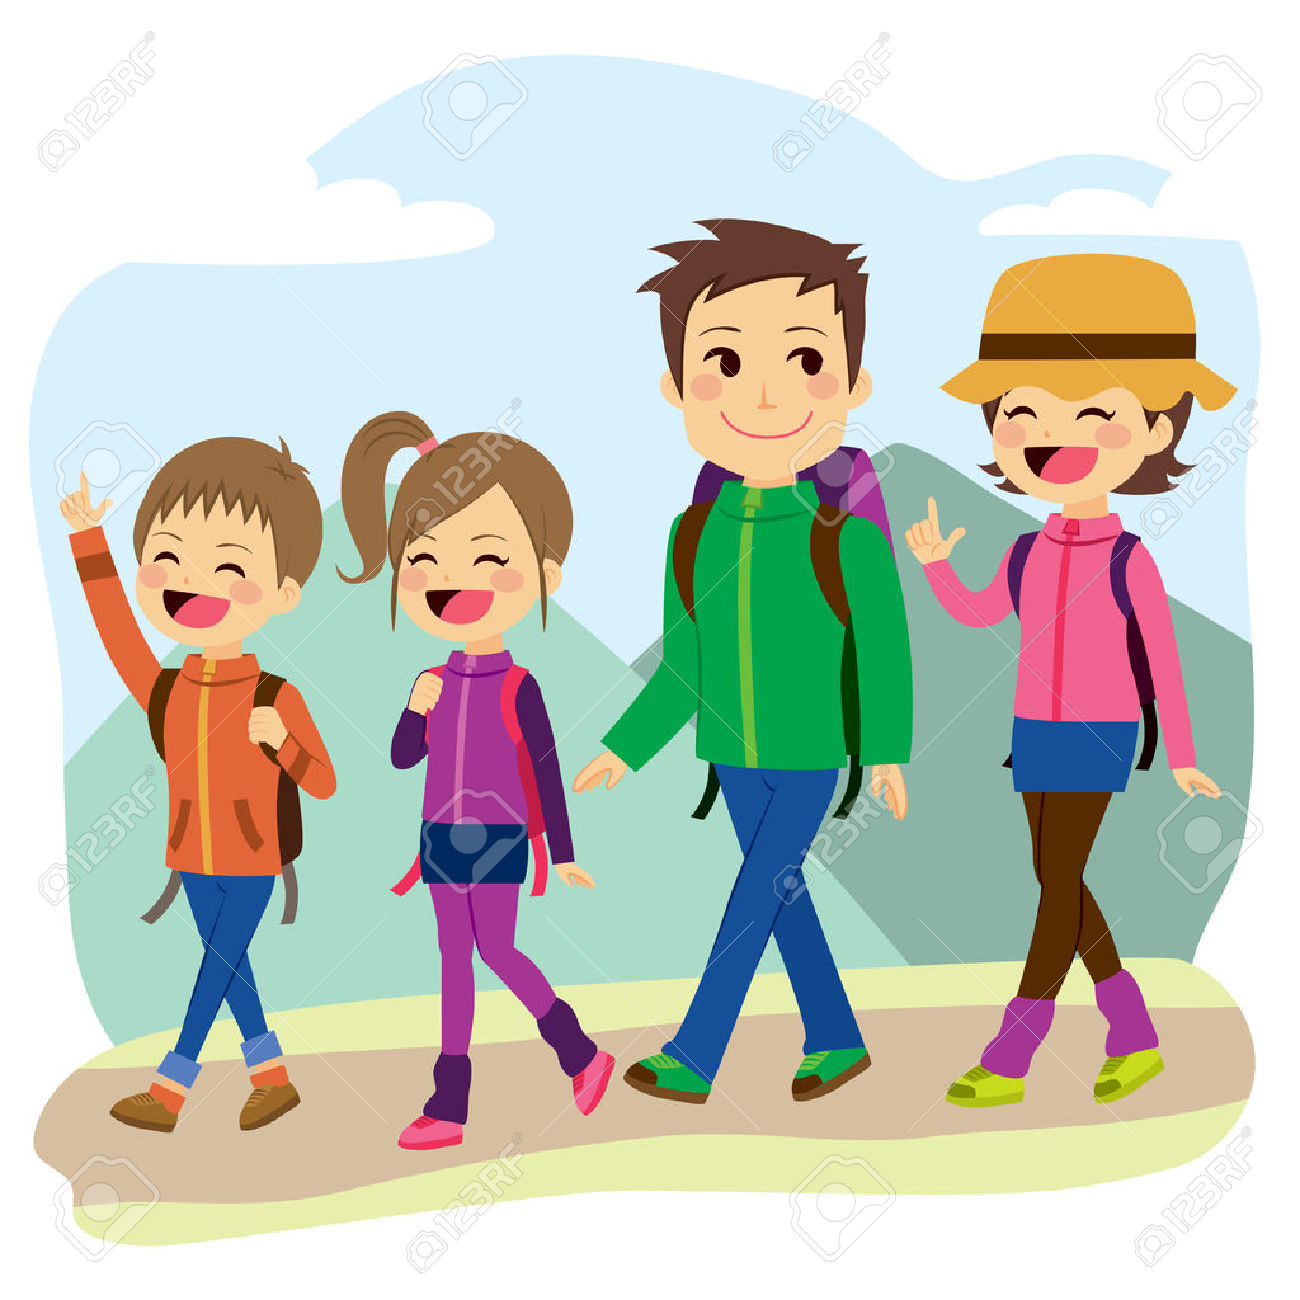 Hiking free download best. Hike clipart family hike